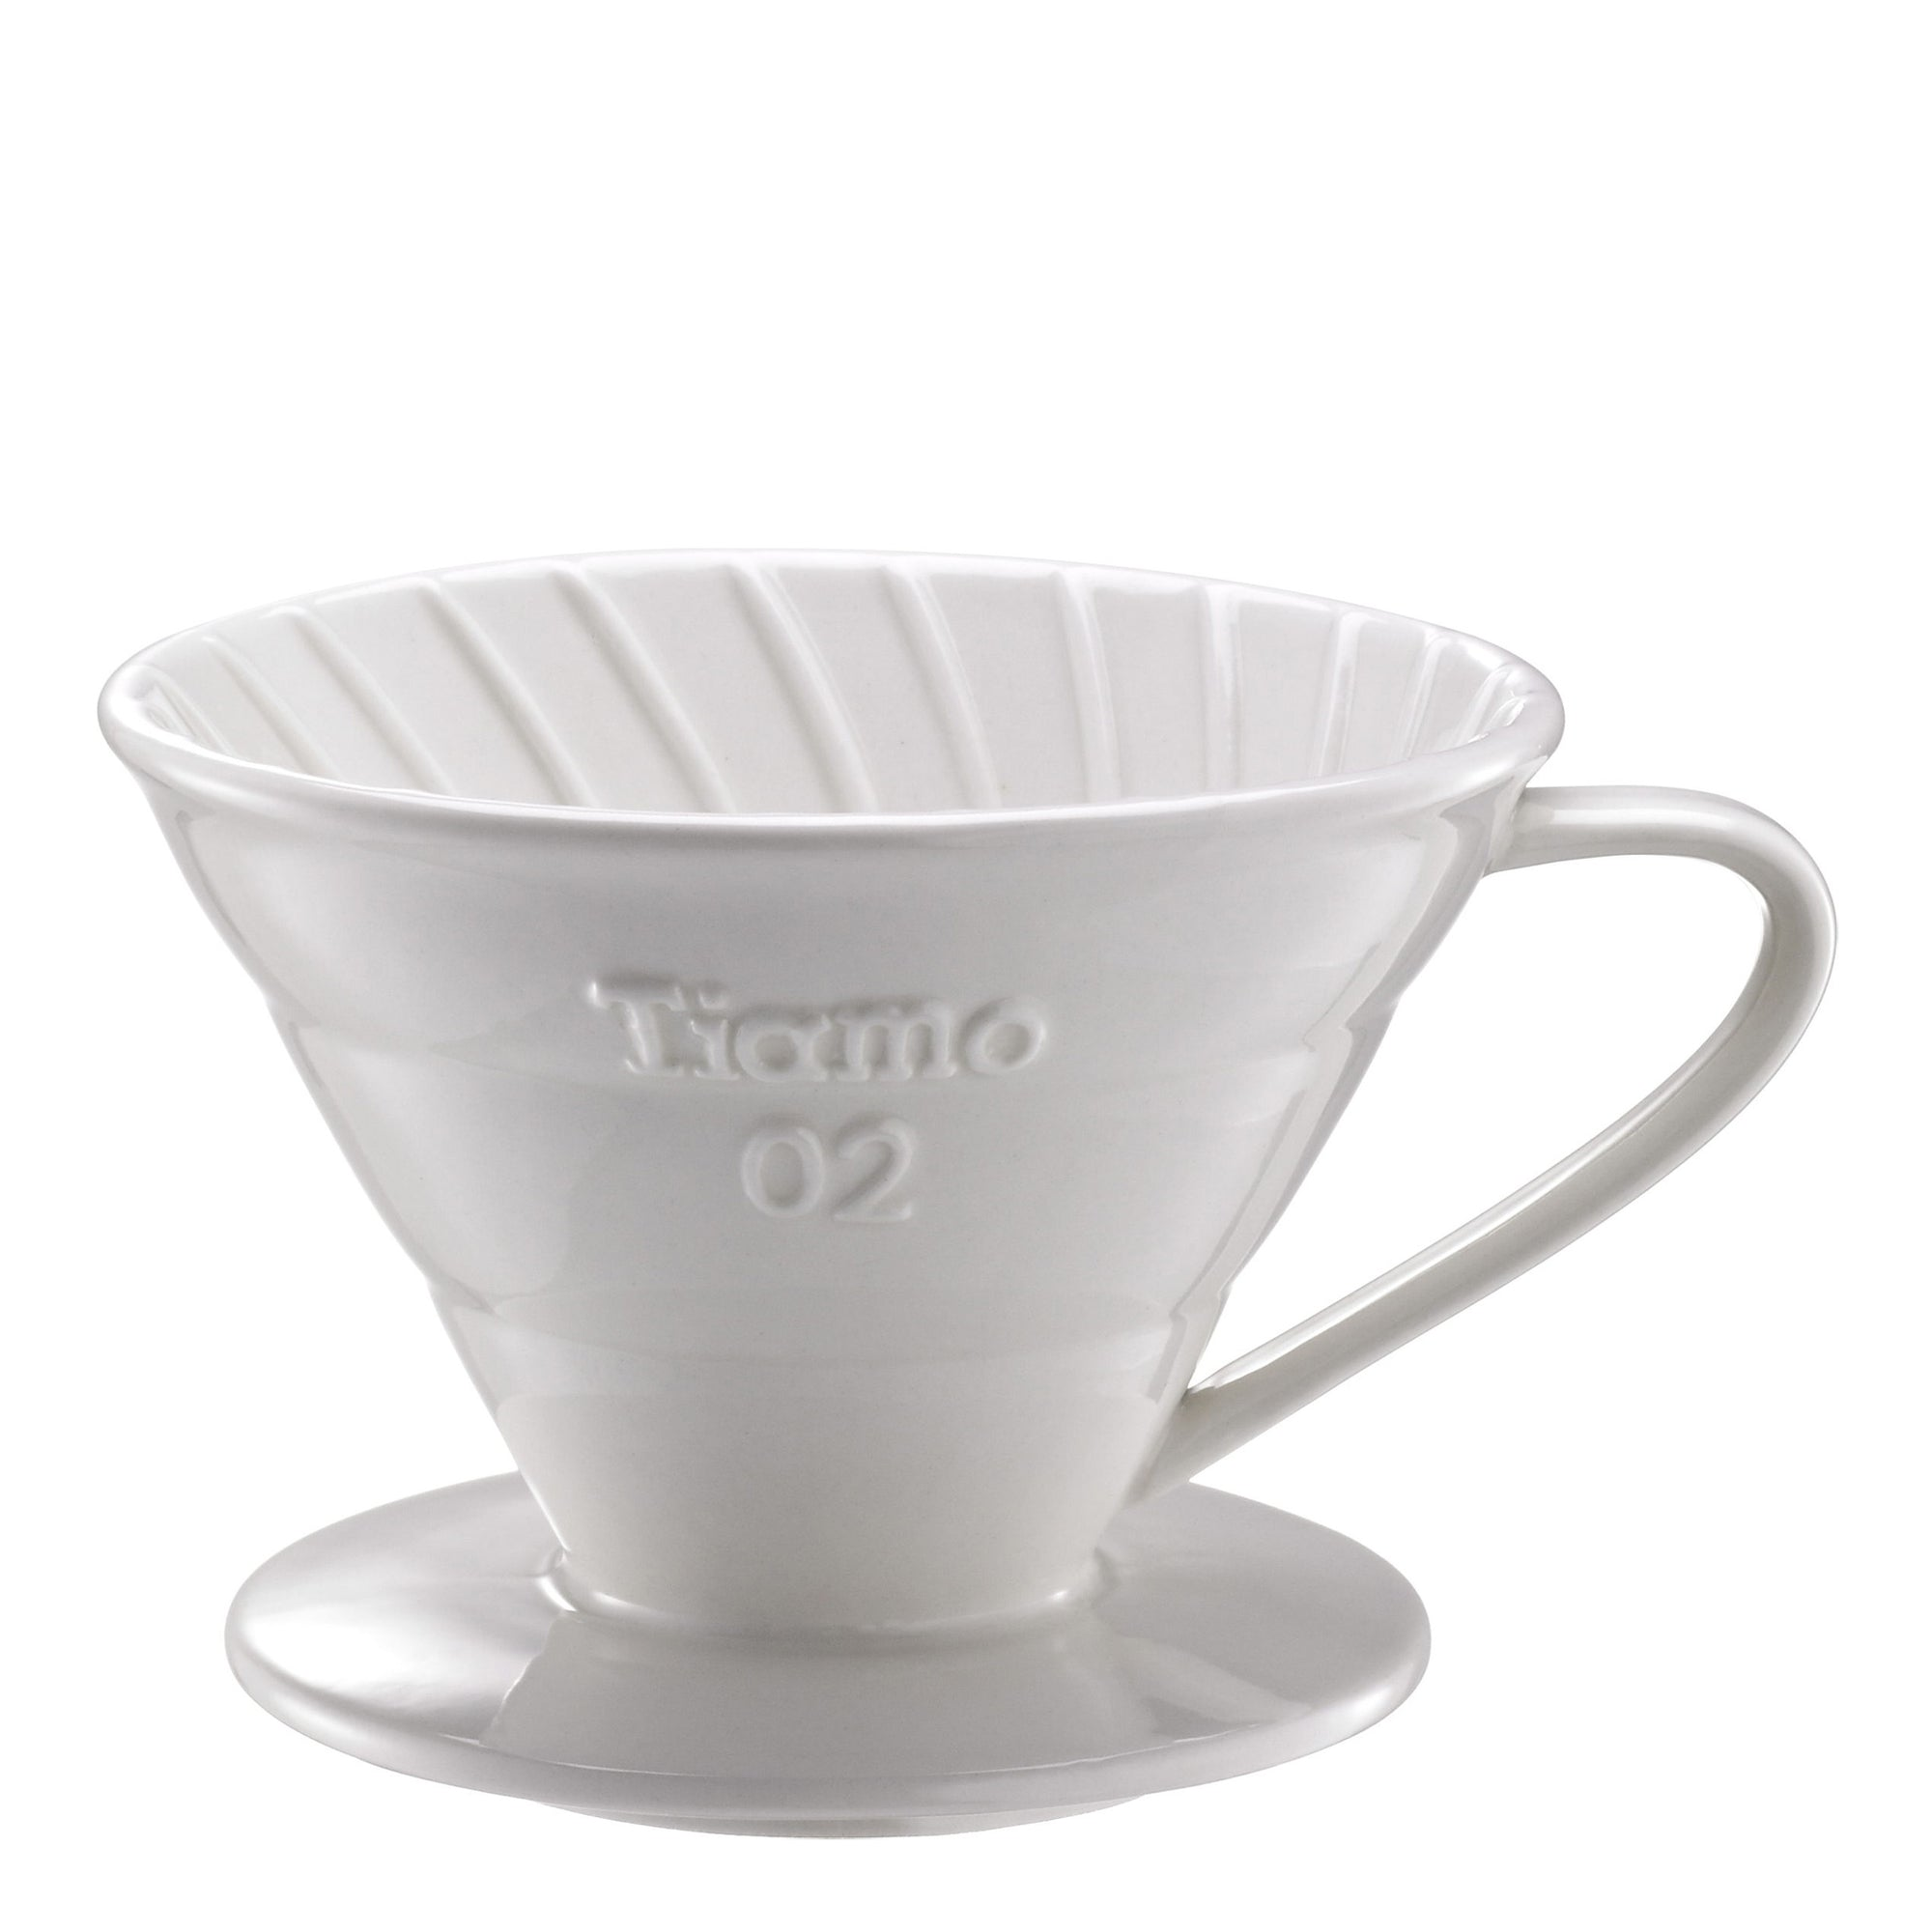 Tiamo V02 Ceramic Filter - White - Espresso Gear